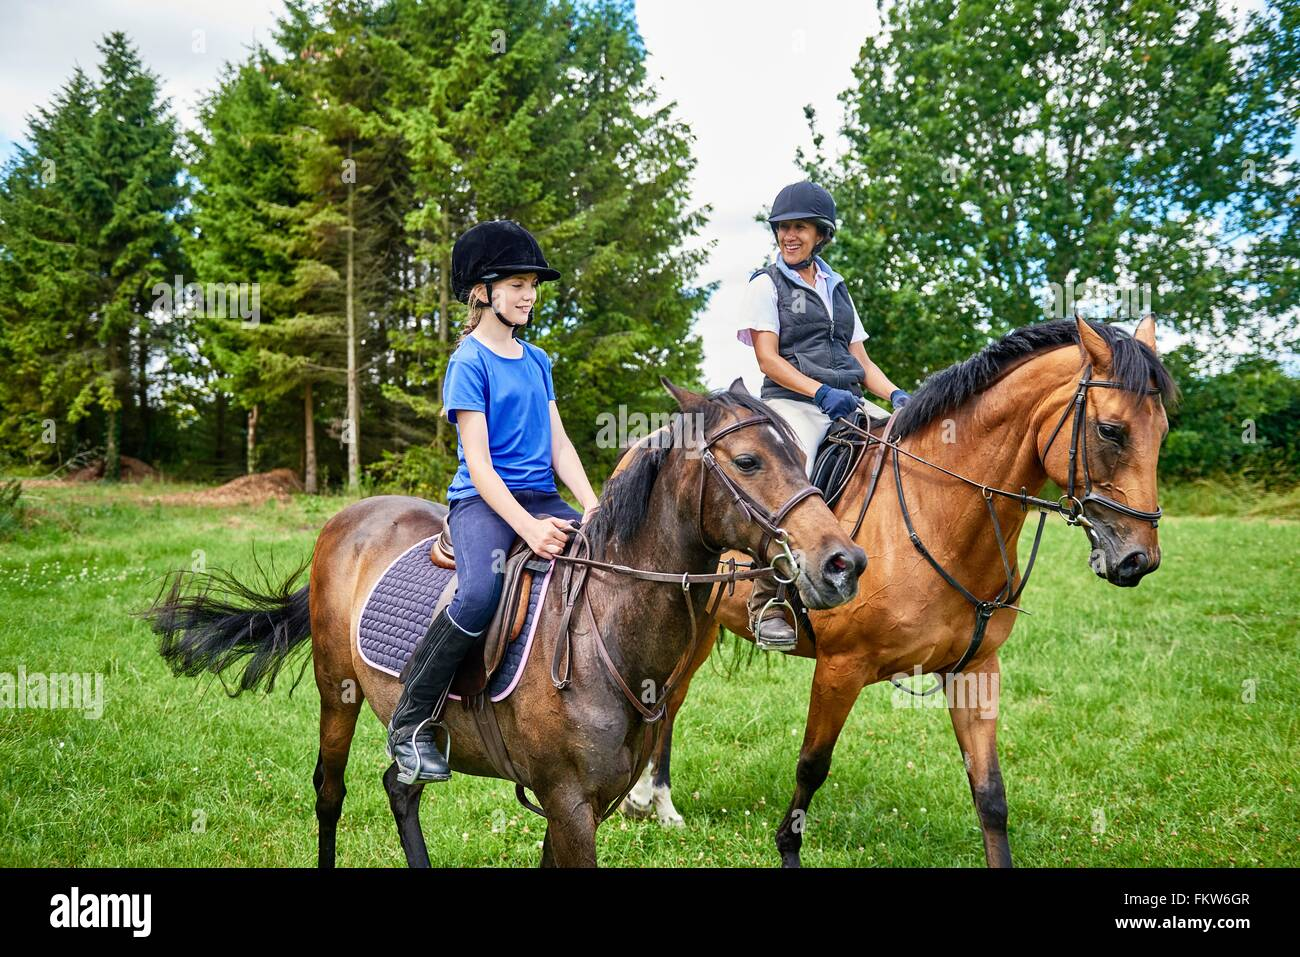 Mature woman and girl on horseback wearing riding hats smiling - Stock Image